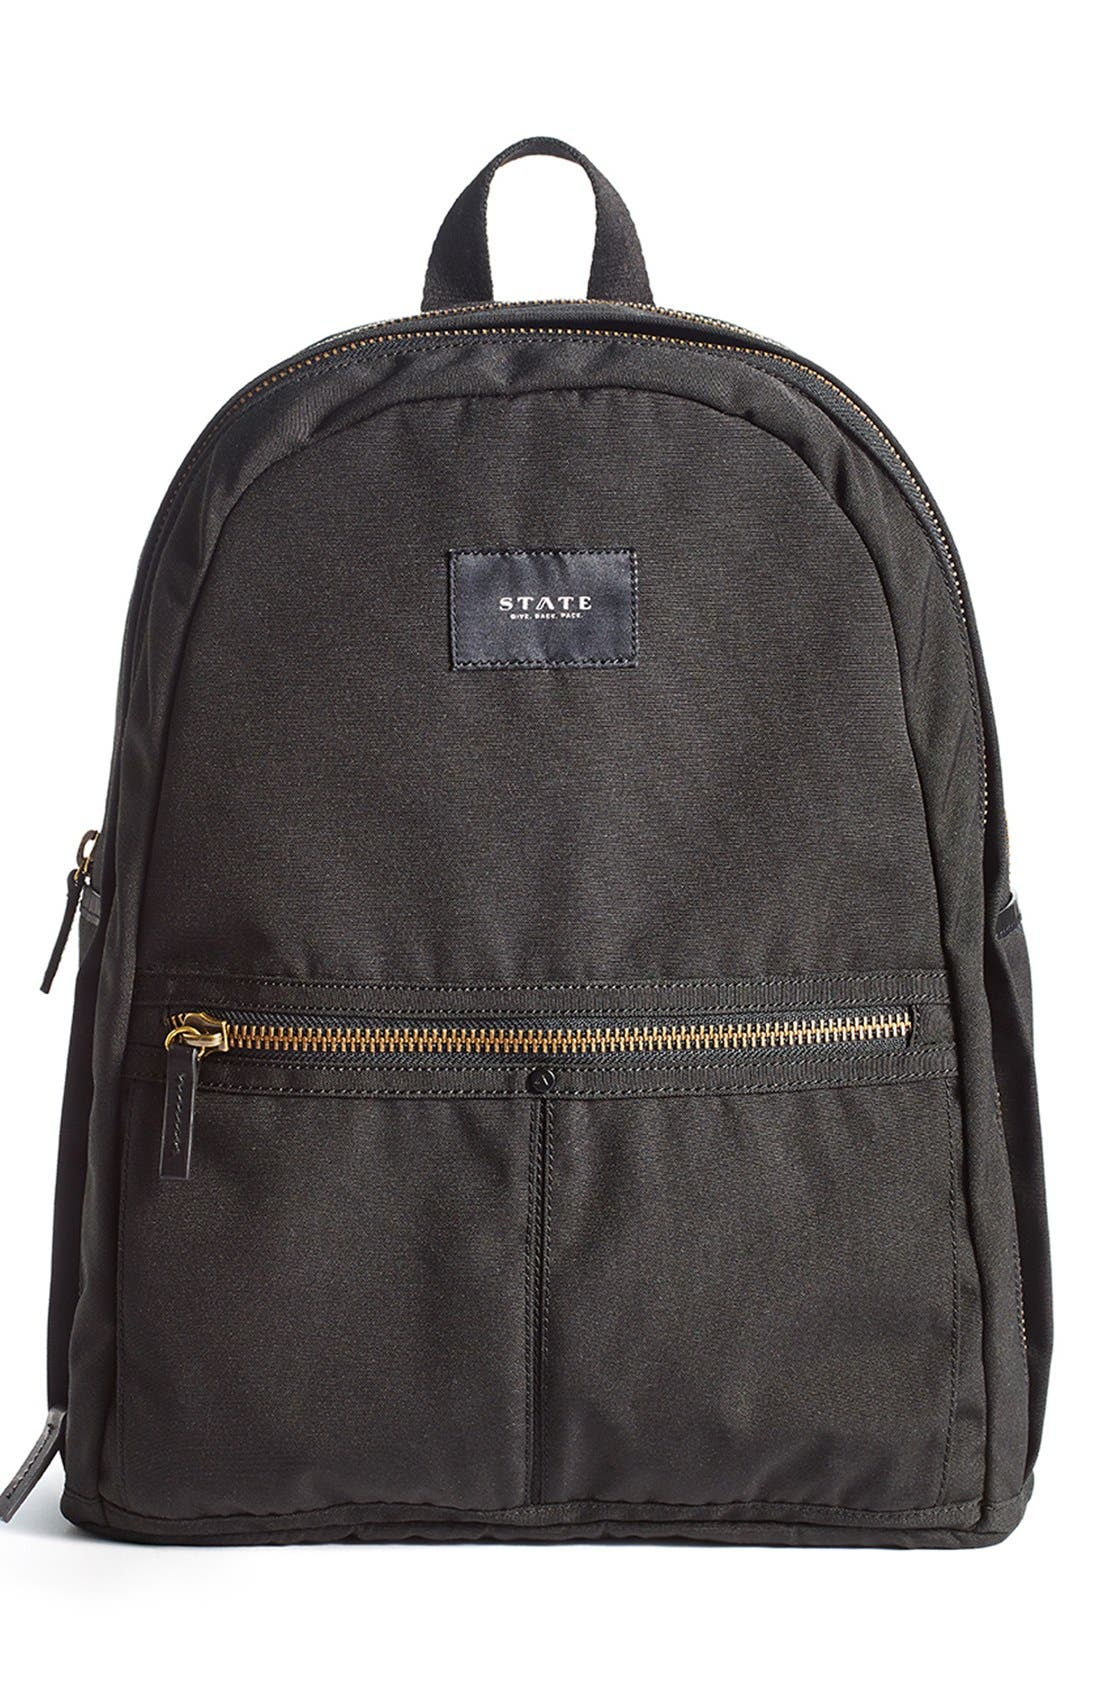 Main Image - STATE Bags 'Union' Water Resistant Backpack